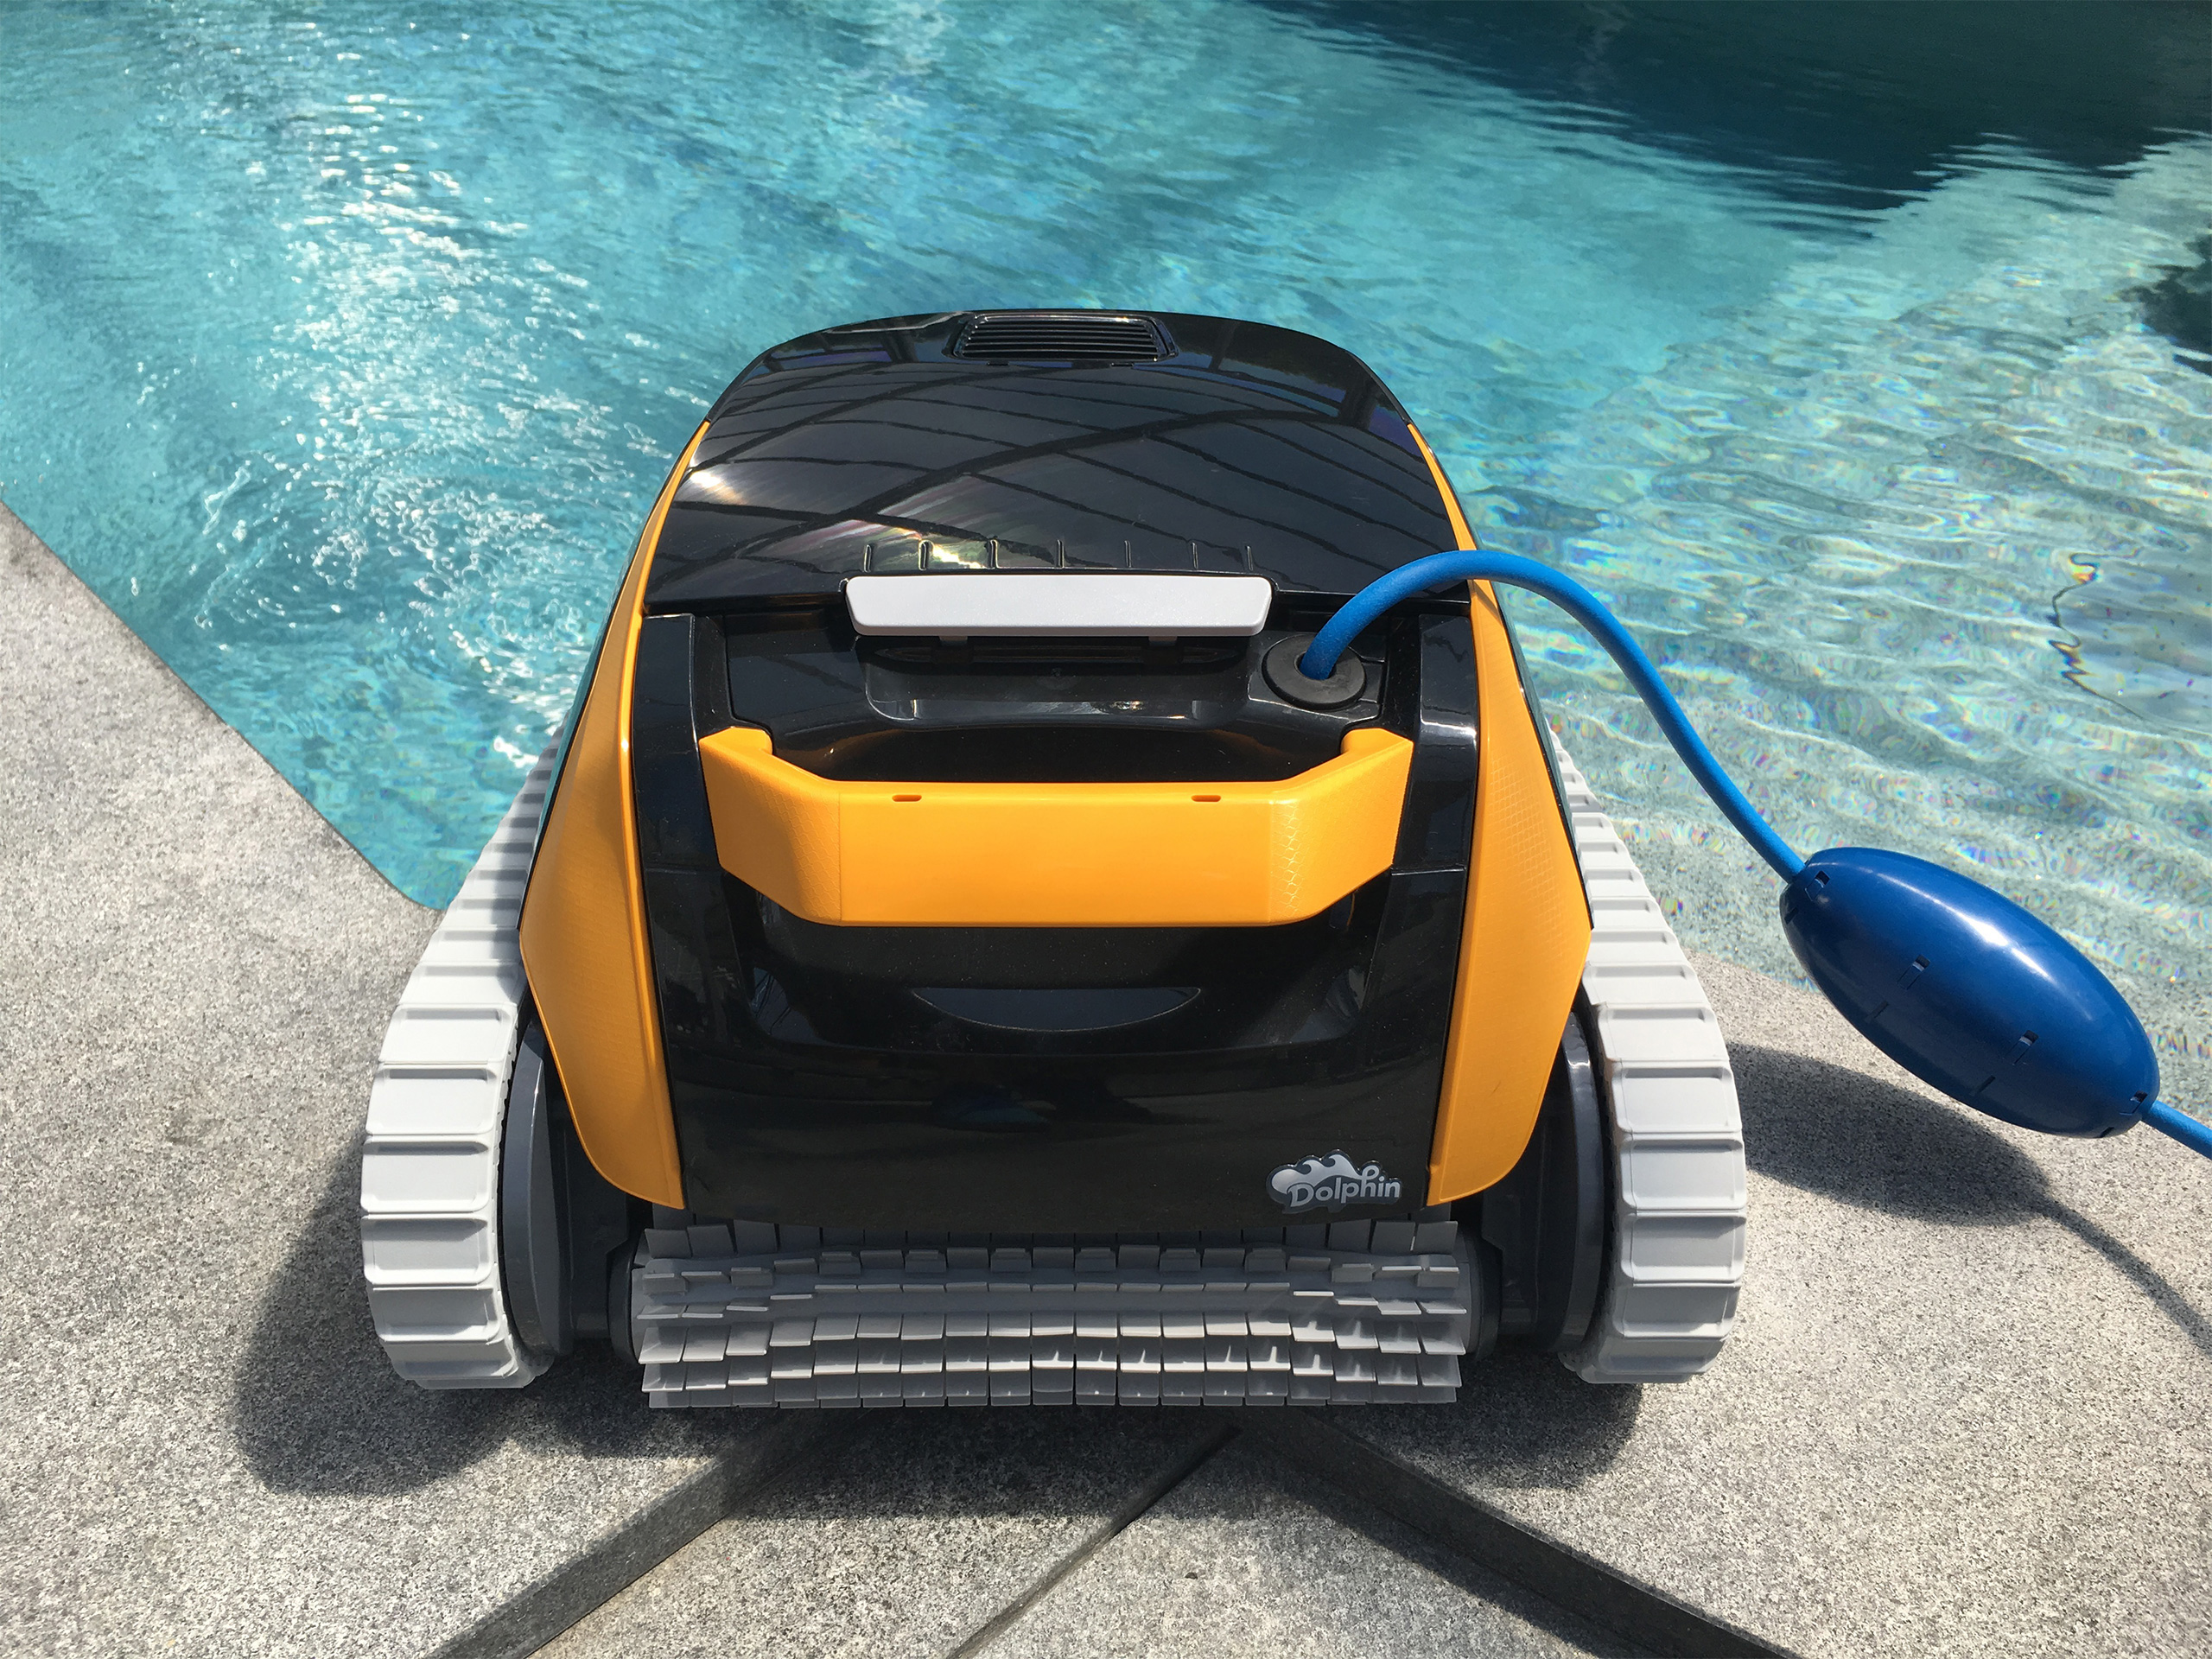 Poolroboter Poolsauger Dolphin E20 Fkb Schwimmbadtechnik